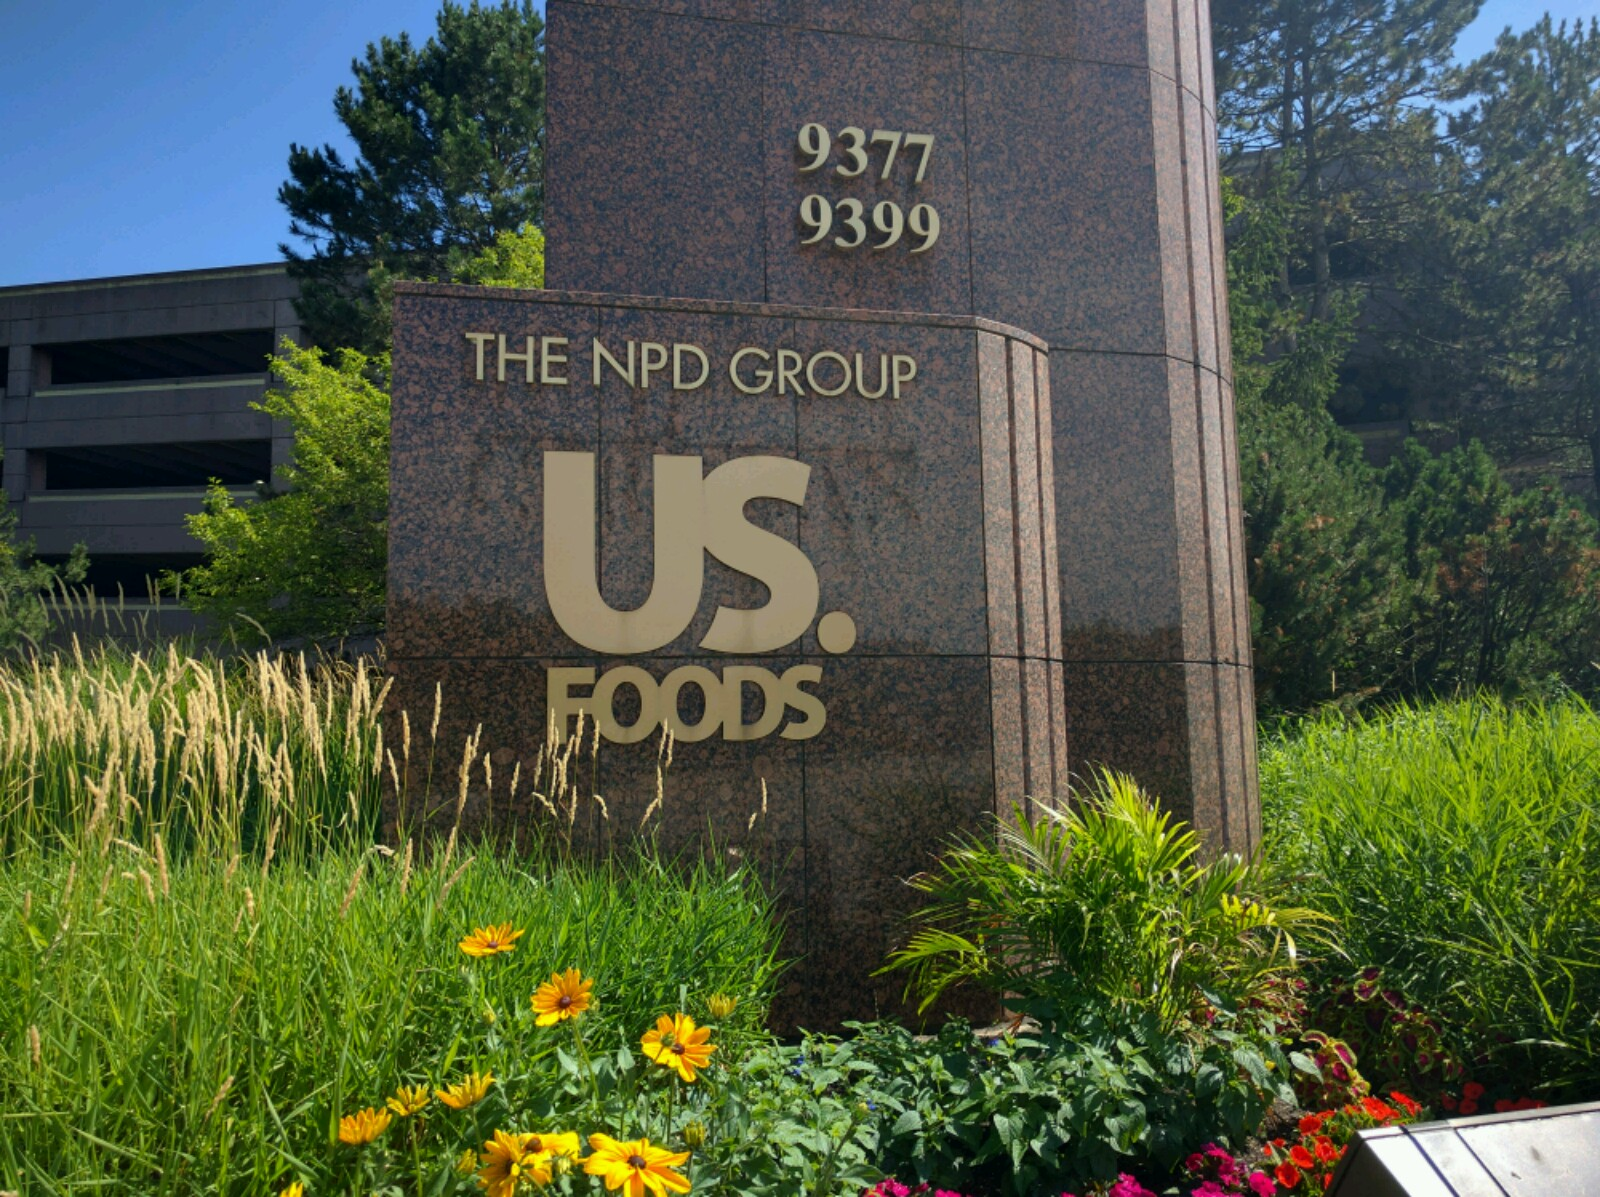 Entrance to US Foods' headquarters in Rosemont, Illinois.